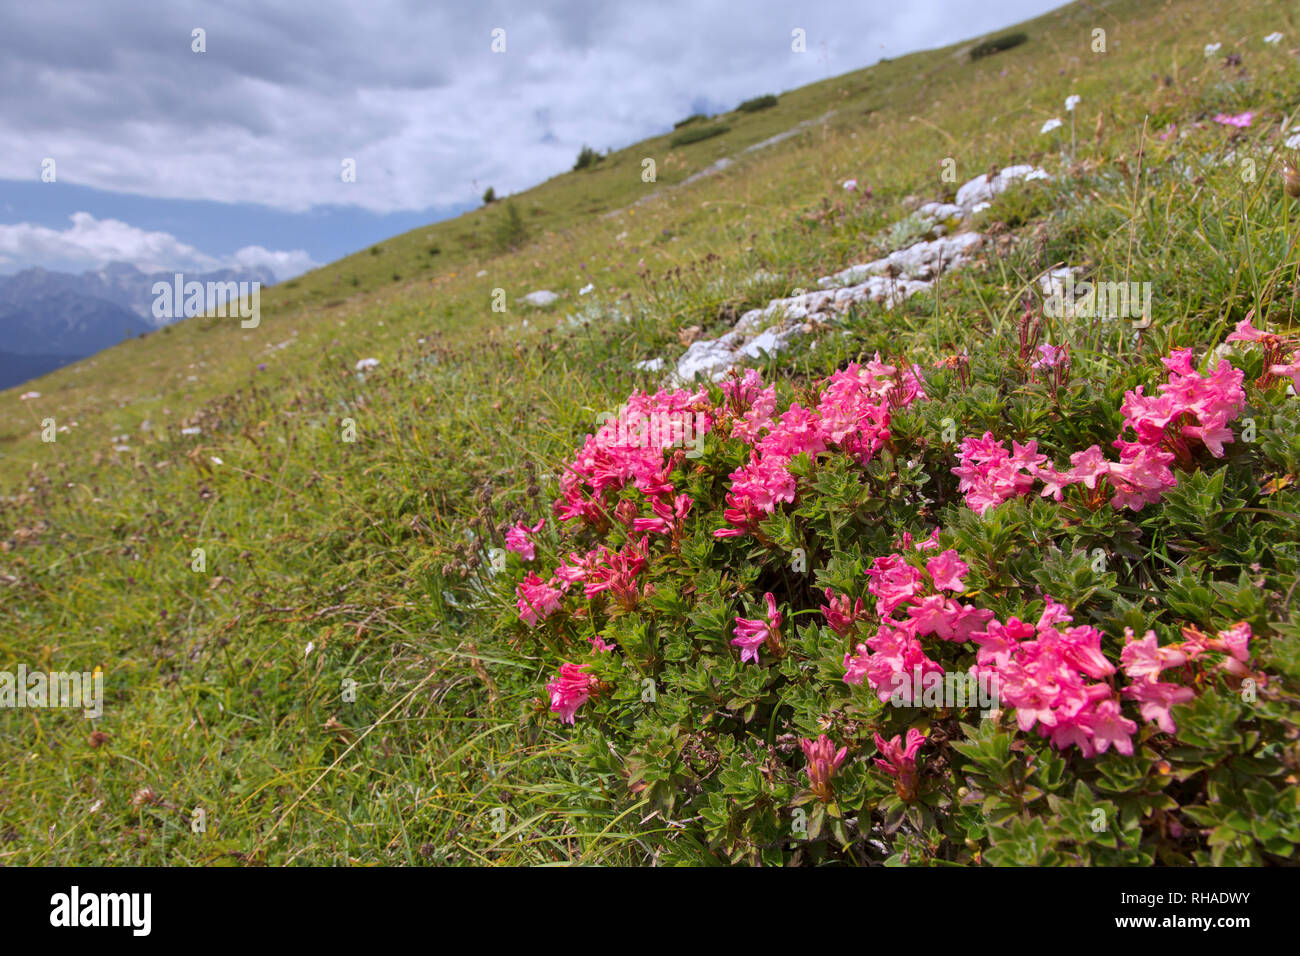 Snow-rose / rusty-leaved alpenrose (Rhododendron ferrugineum) in flower, Hohe Tauern National Park, Carinthia, Austria - Stock Image